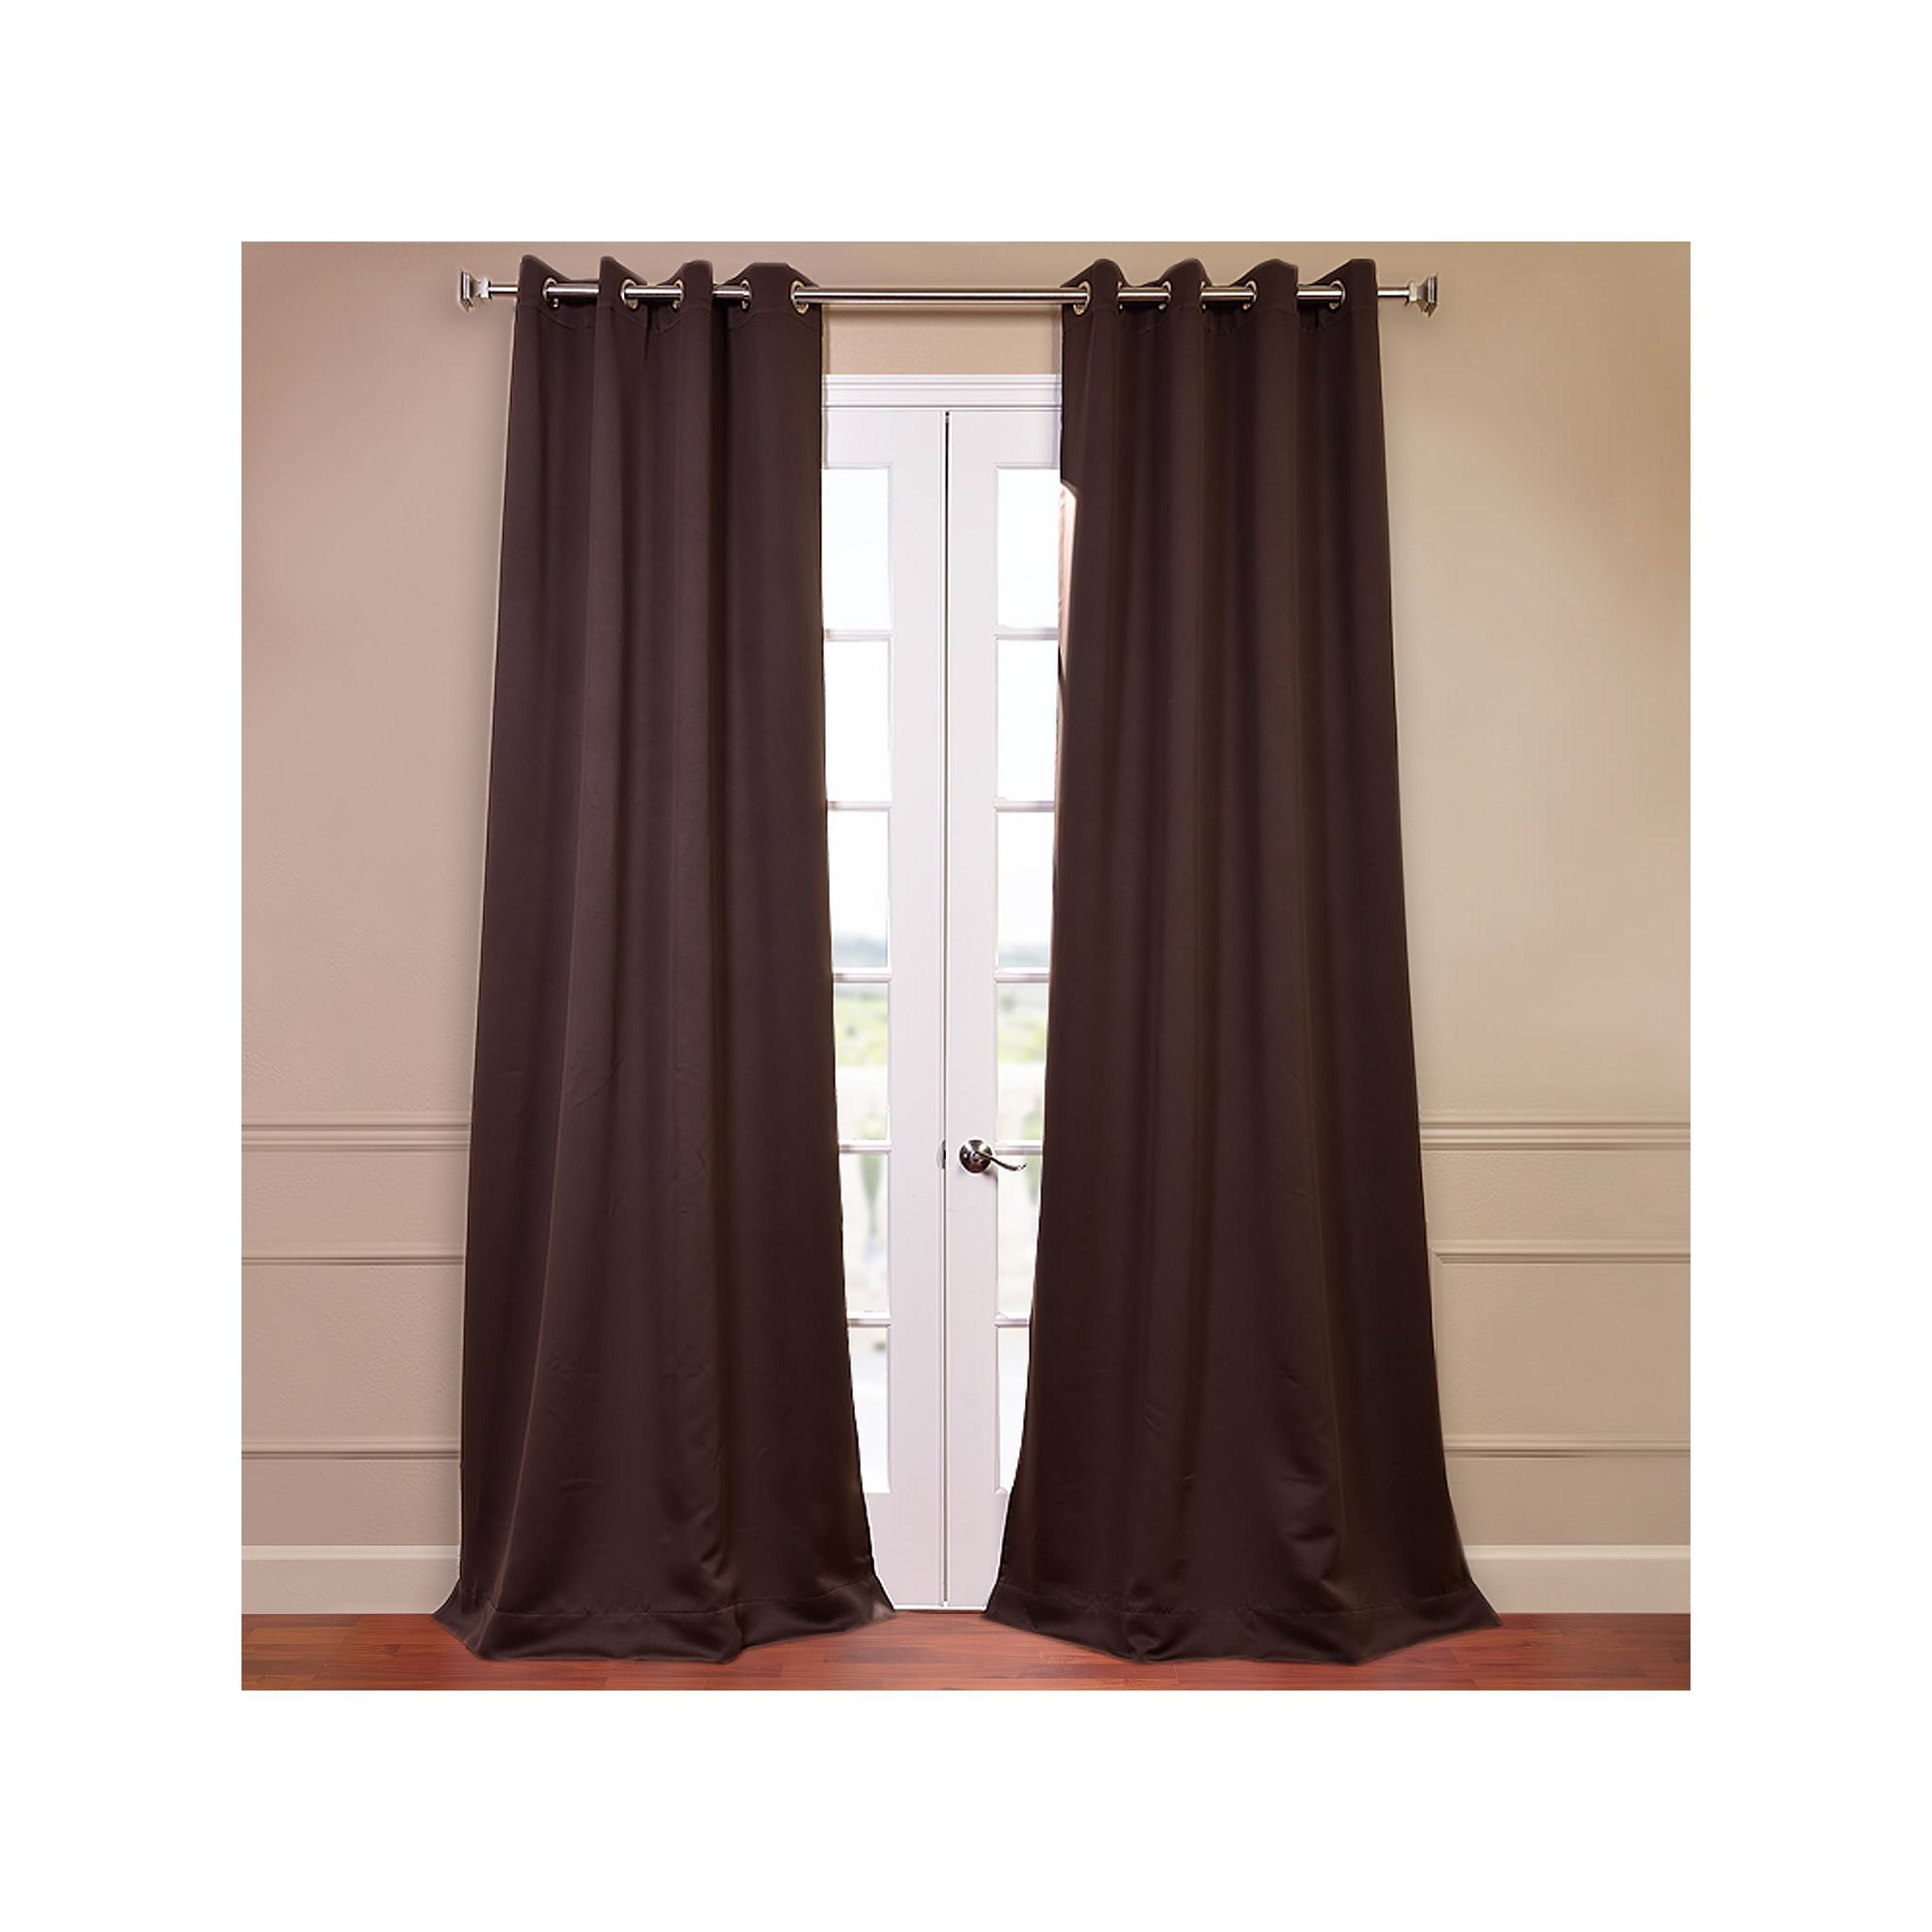 Eff solid blackout window curtain set green products